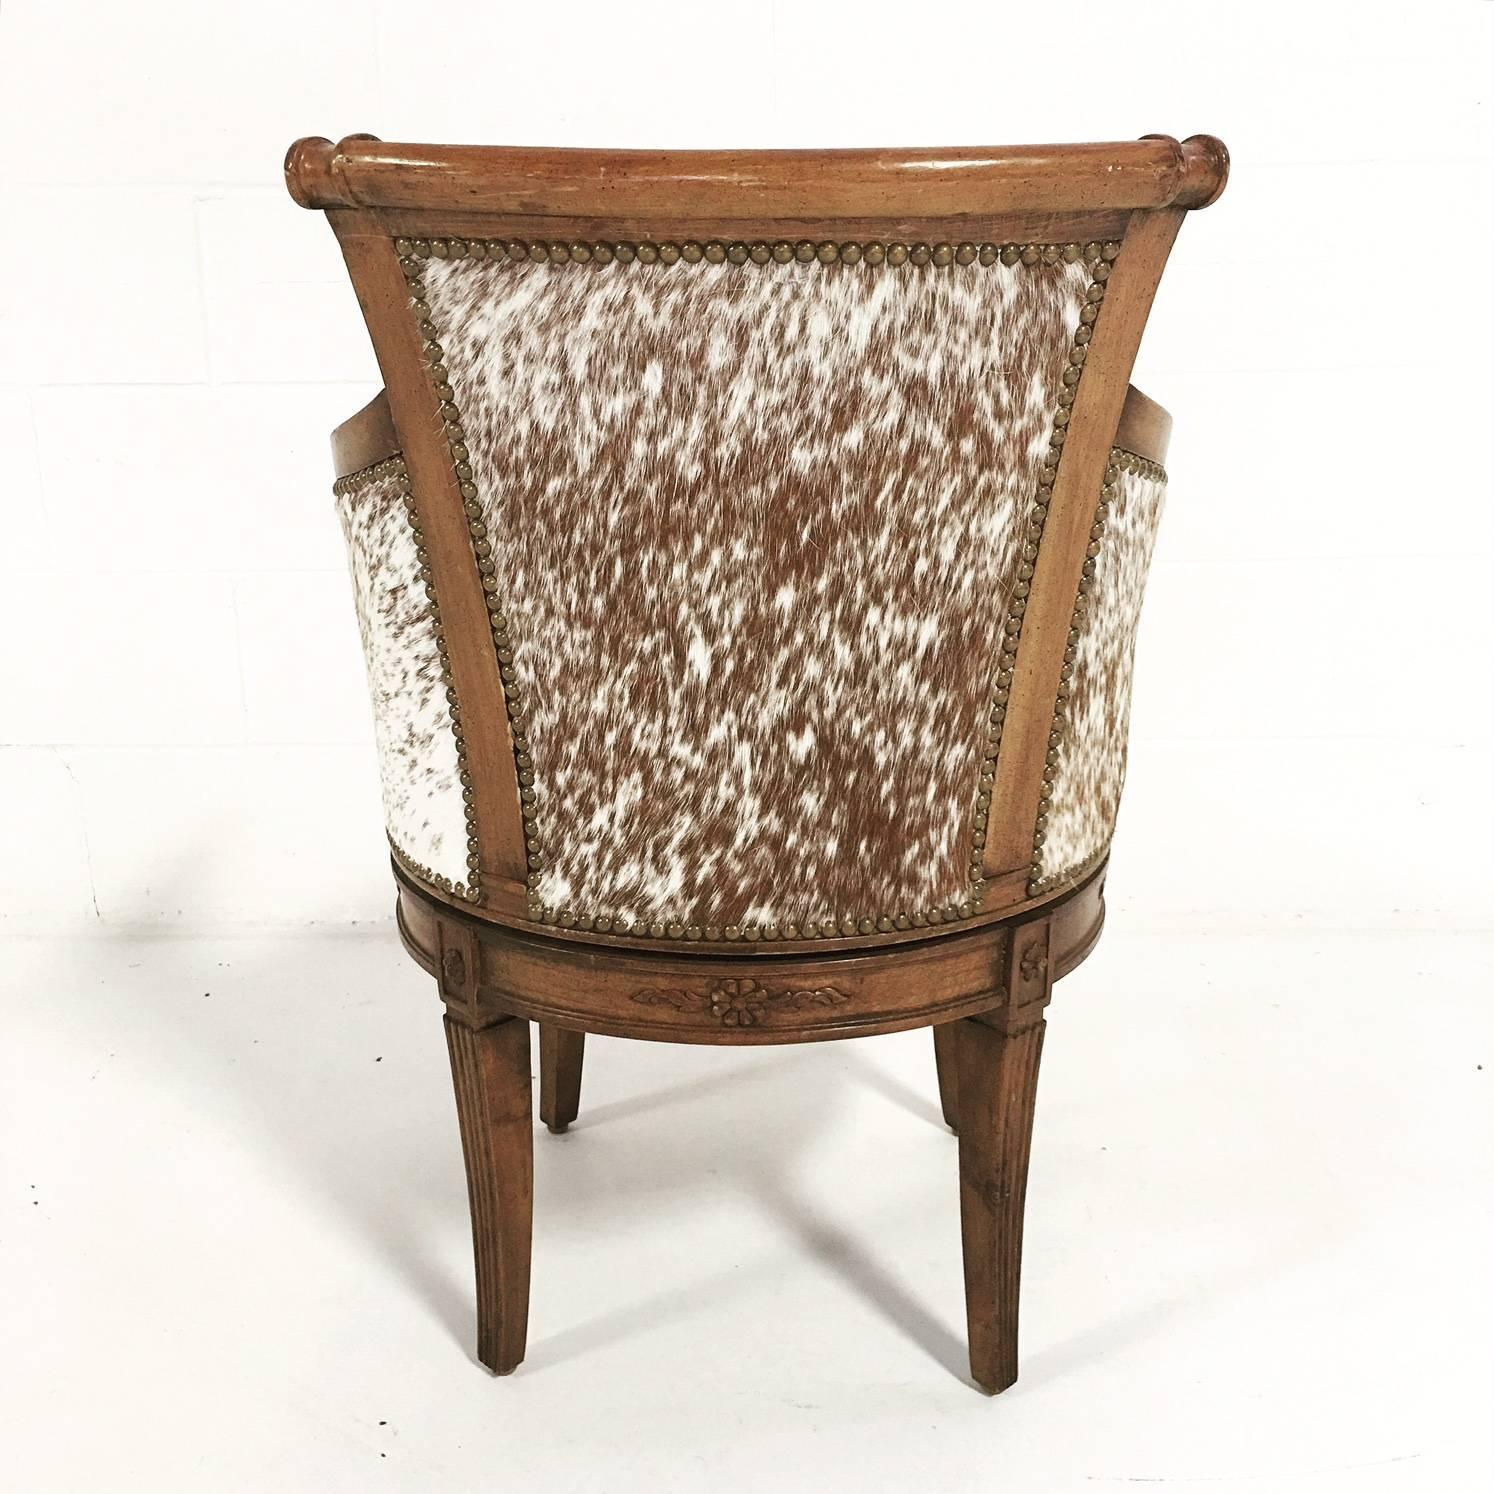 cowhide chairs nz keter baby high chair reviews vintage swivel in brown and white speckled brazilian